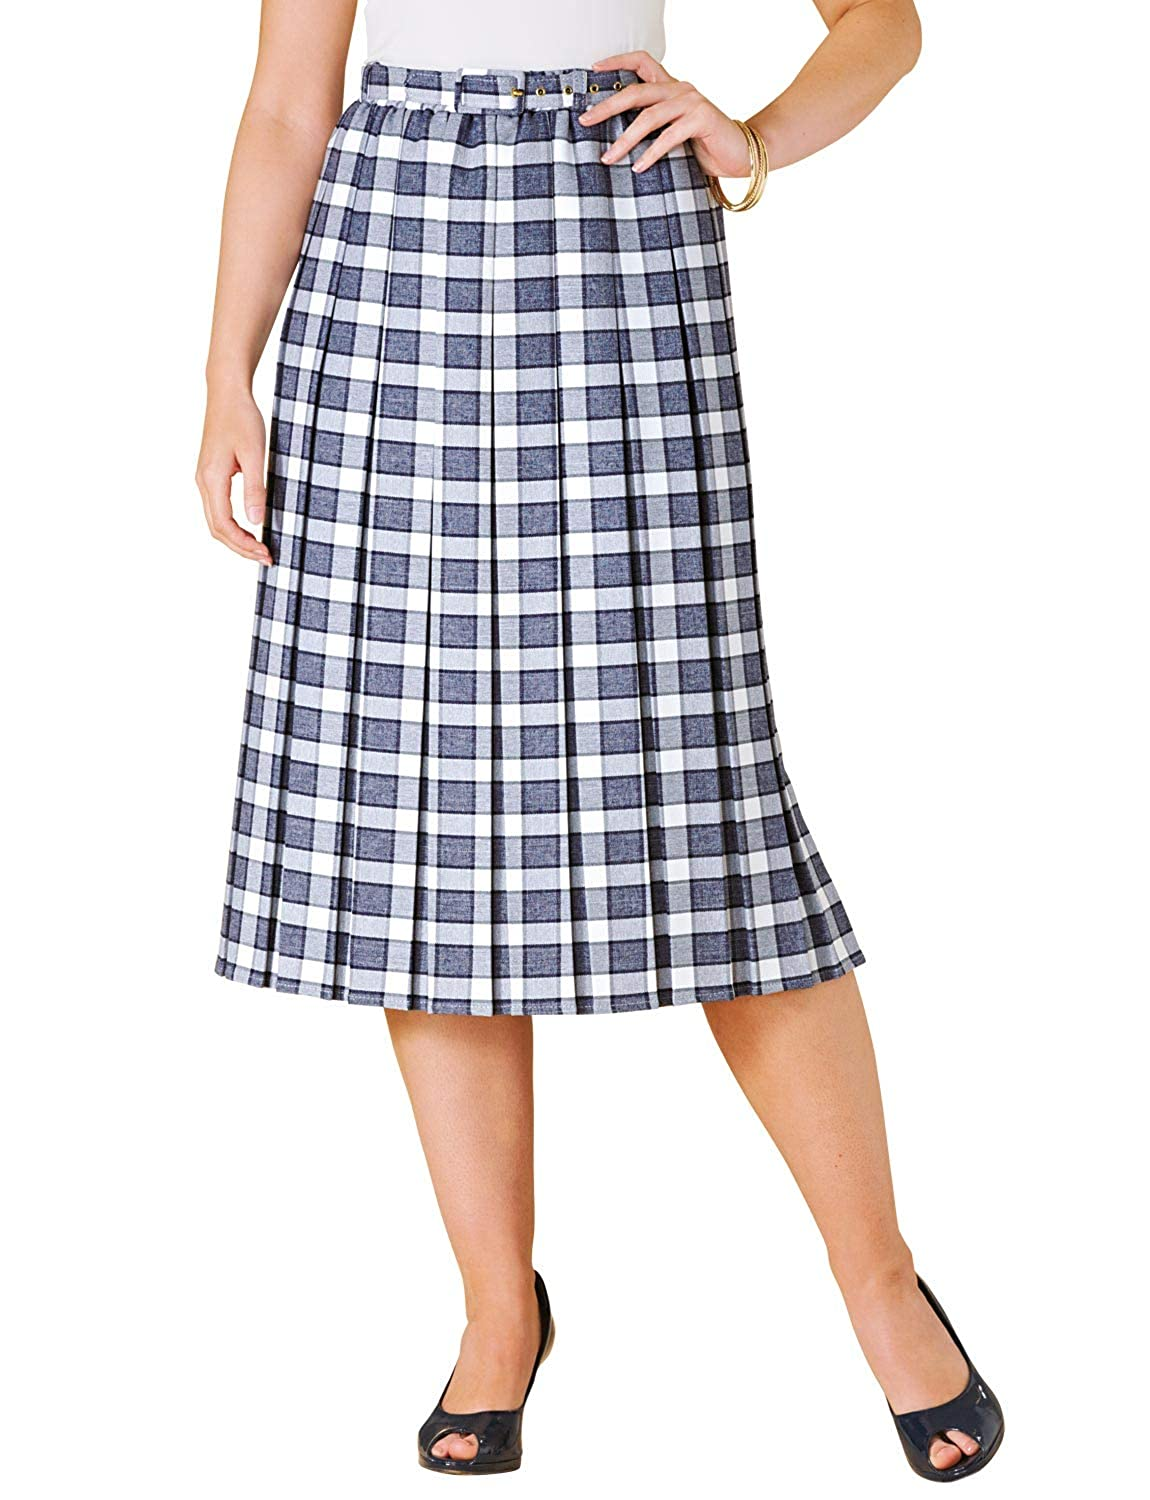 Retro Skirts: Vintage, Pencil, Circle, & Plus Sizes Chums Ladies Womens Pleated Skirt 25 Inches £34.00 AT vintagedancer.com